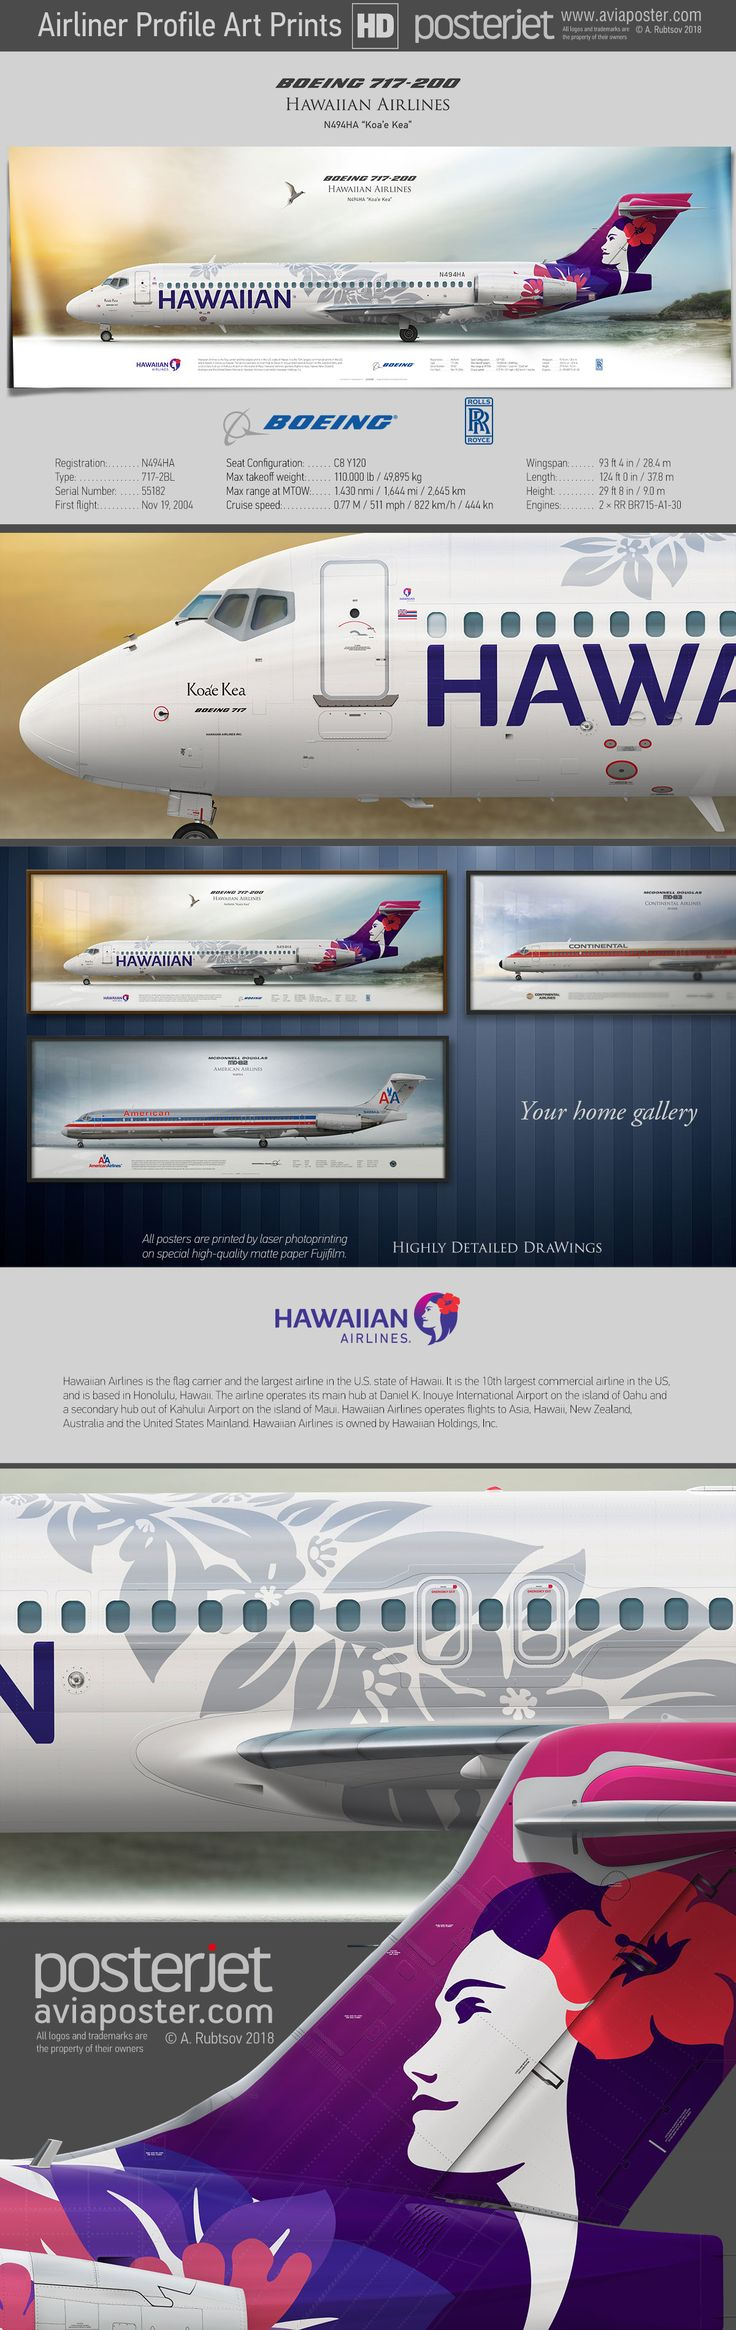 The 74 Best Hawaiian Airlines Images On Pinterest Hawaiian